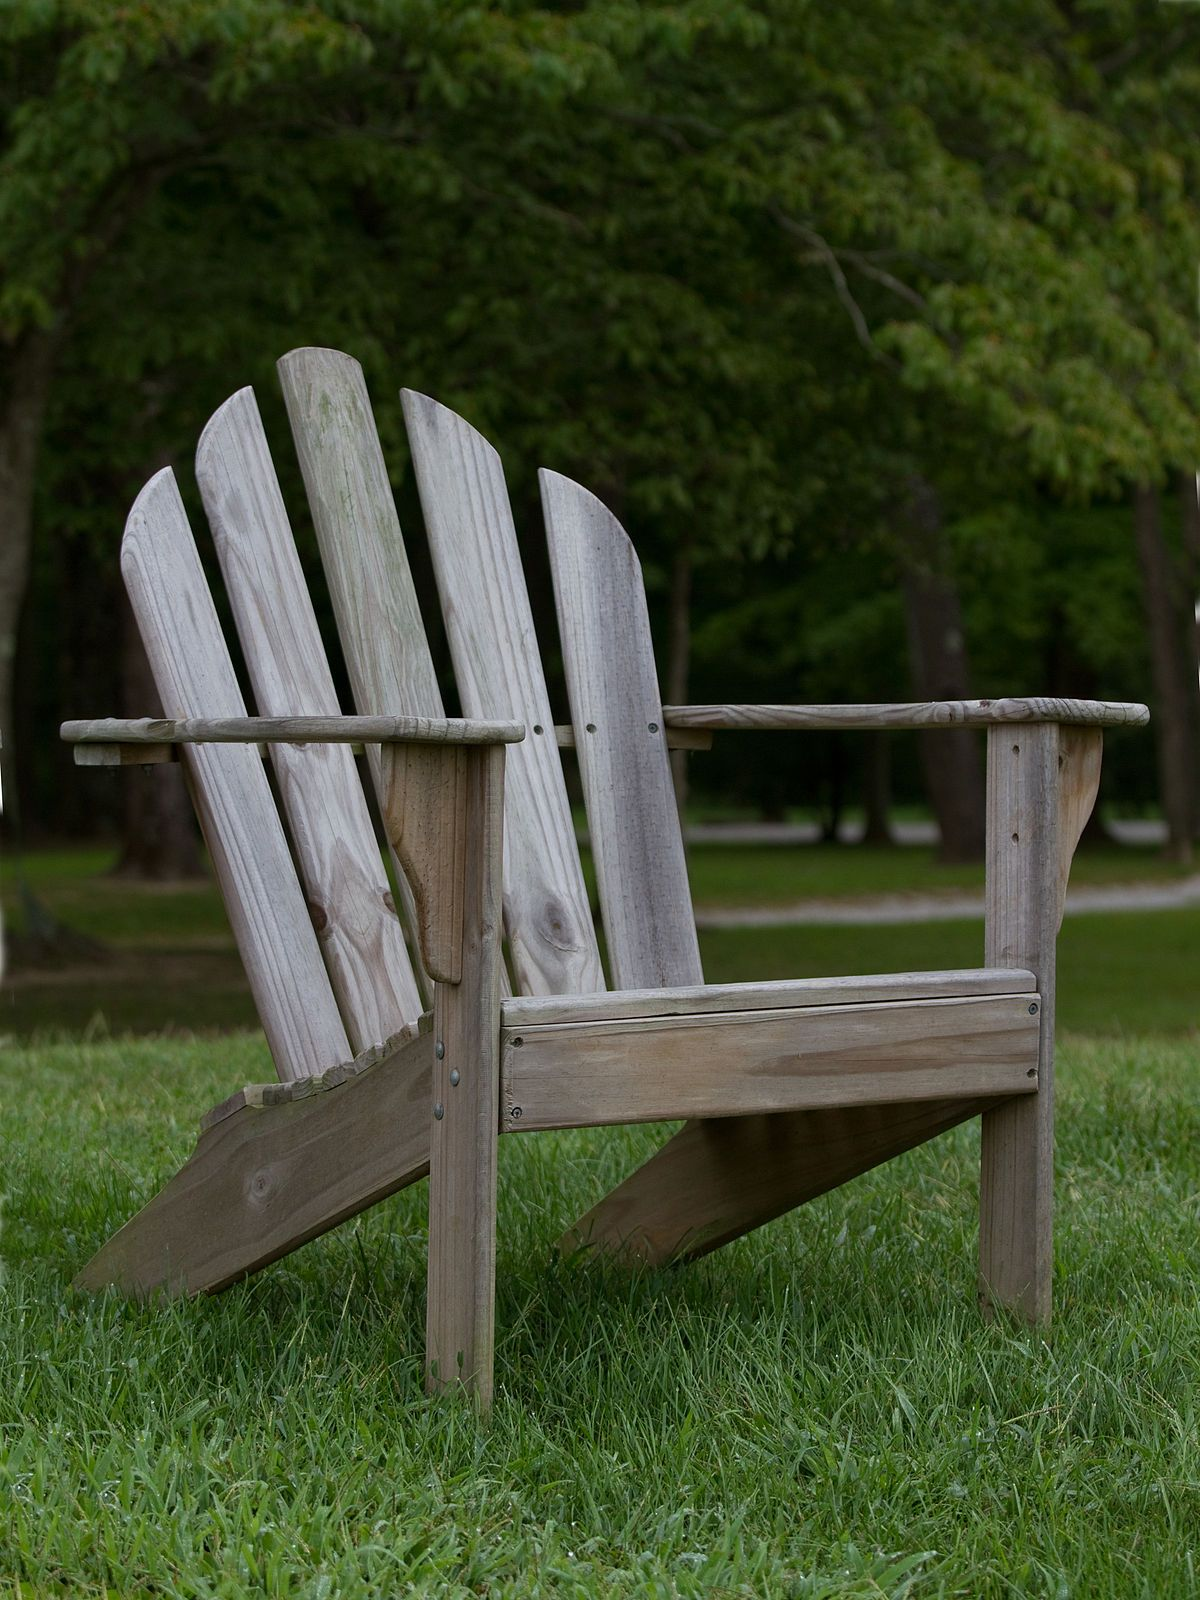 Decorating Rooms An Outfoor With Adirondack Furniture Designalls In 2020 Adirondack Chair Outdoor Chairs Wood Adirondack Chairs